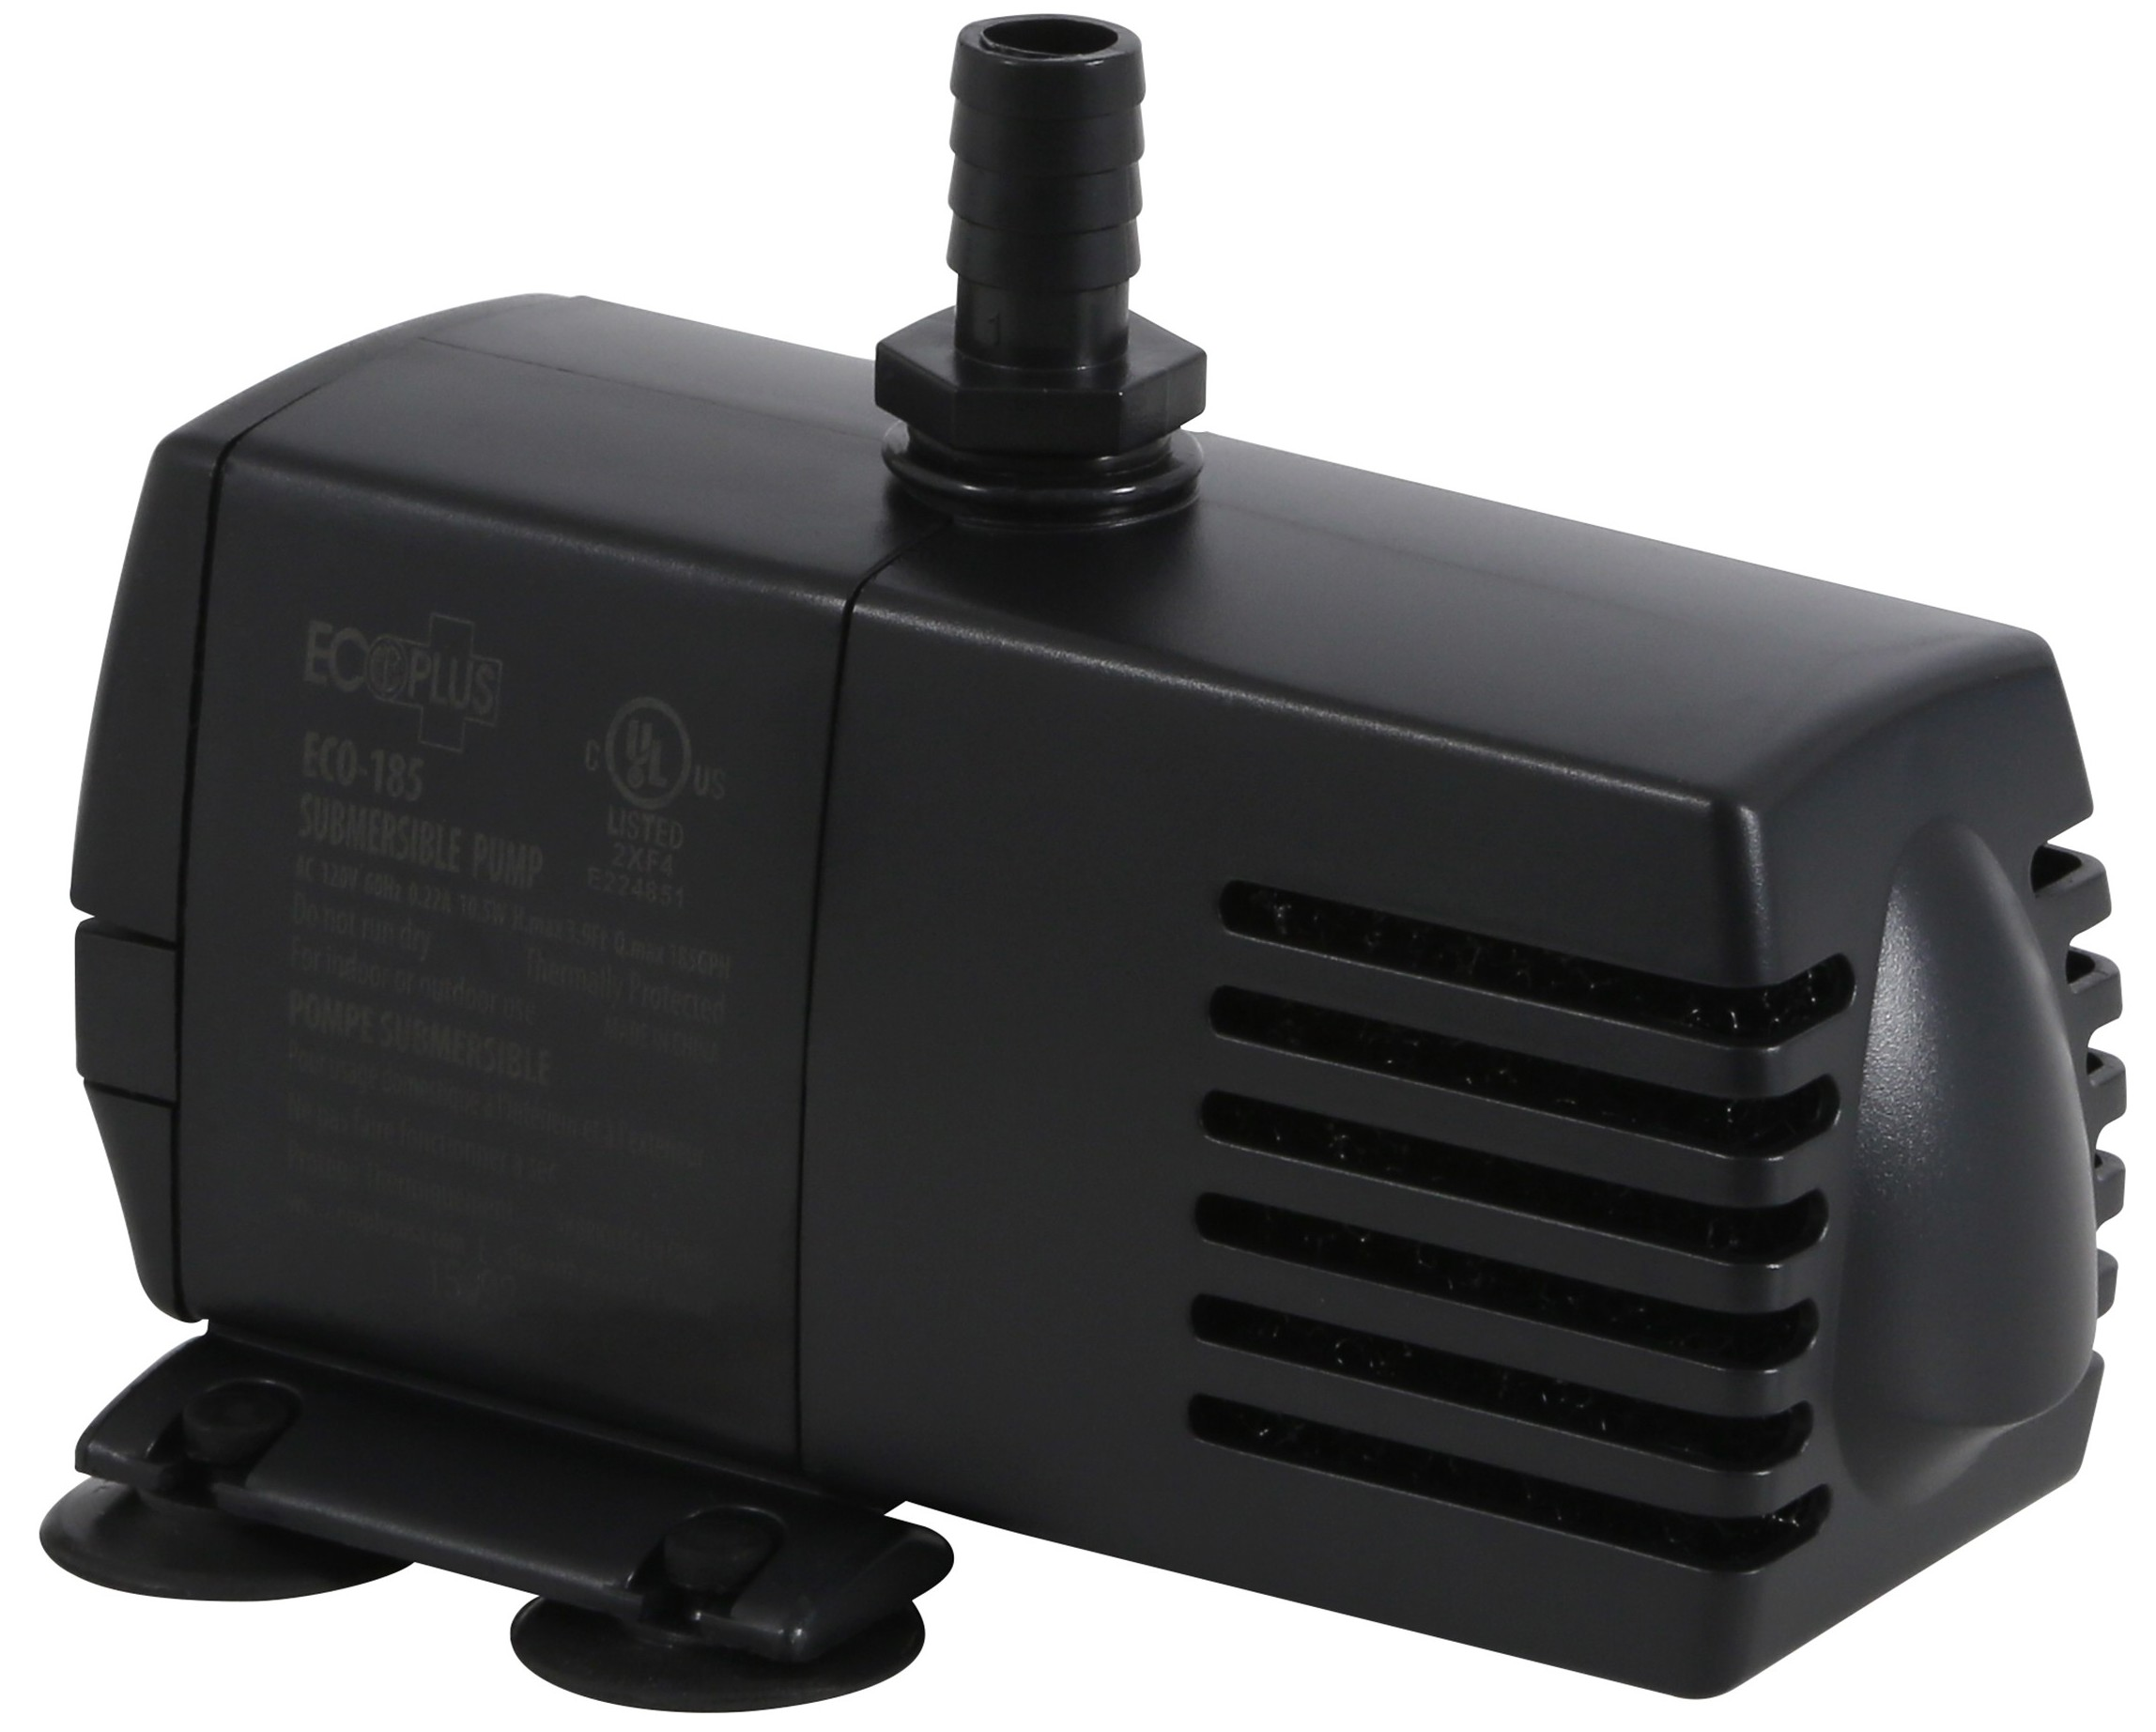 Ecoplus 185 submersible pump 158 gph for Inline hydroponic pump